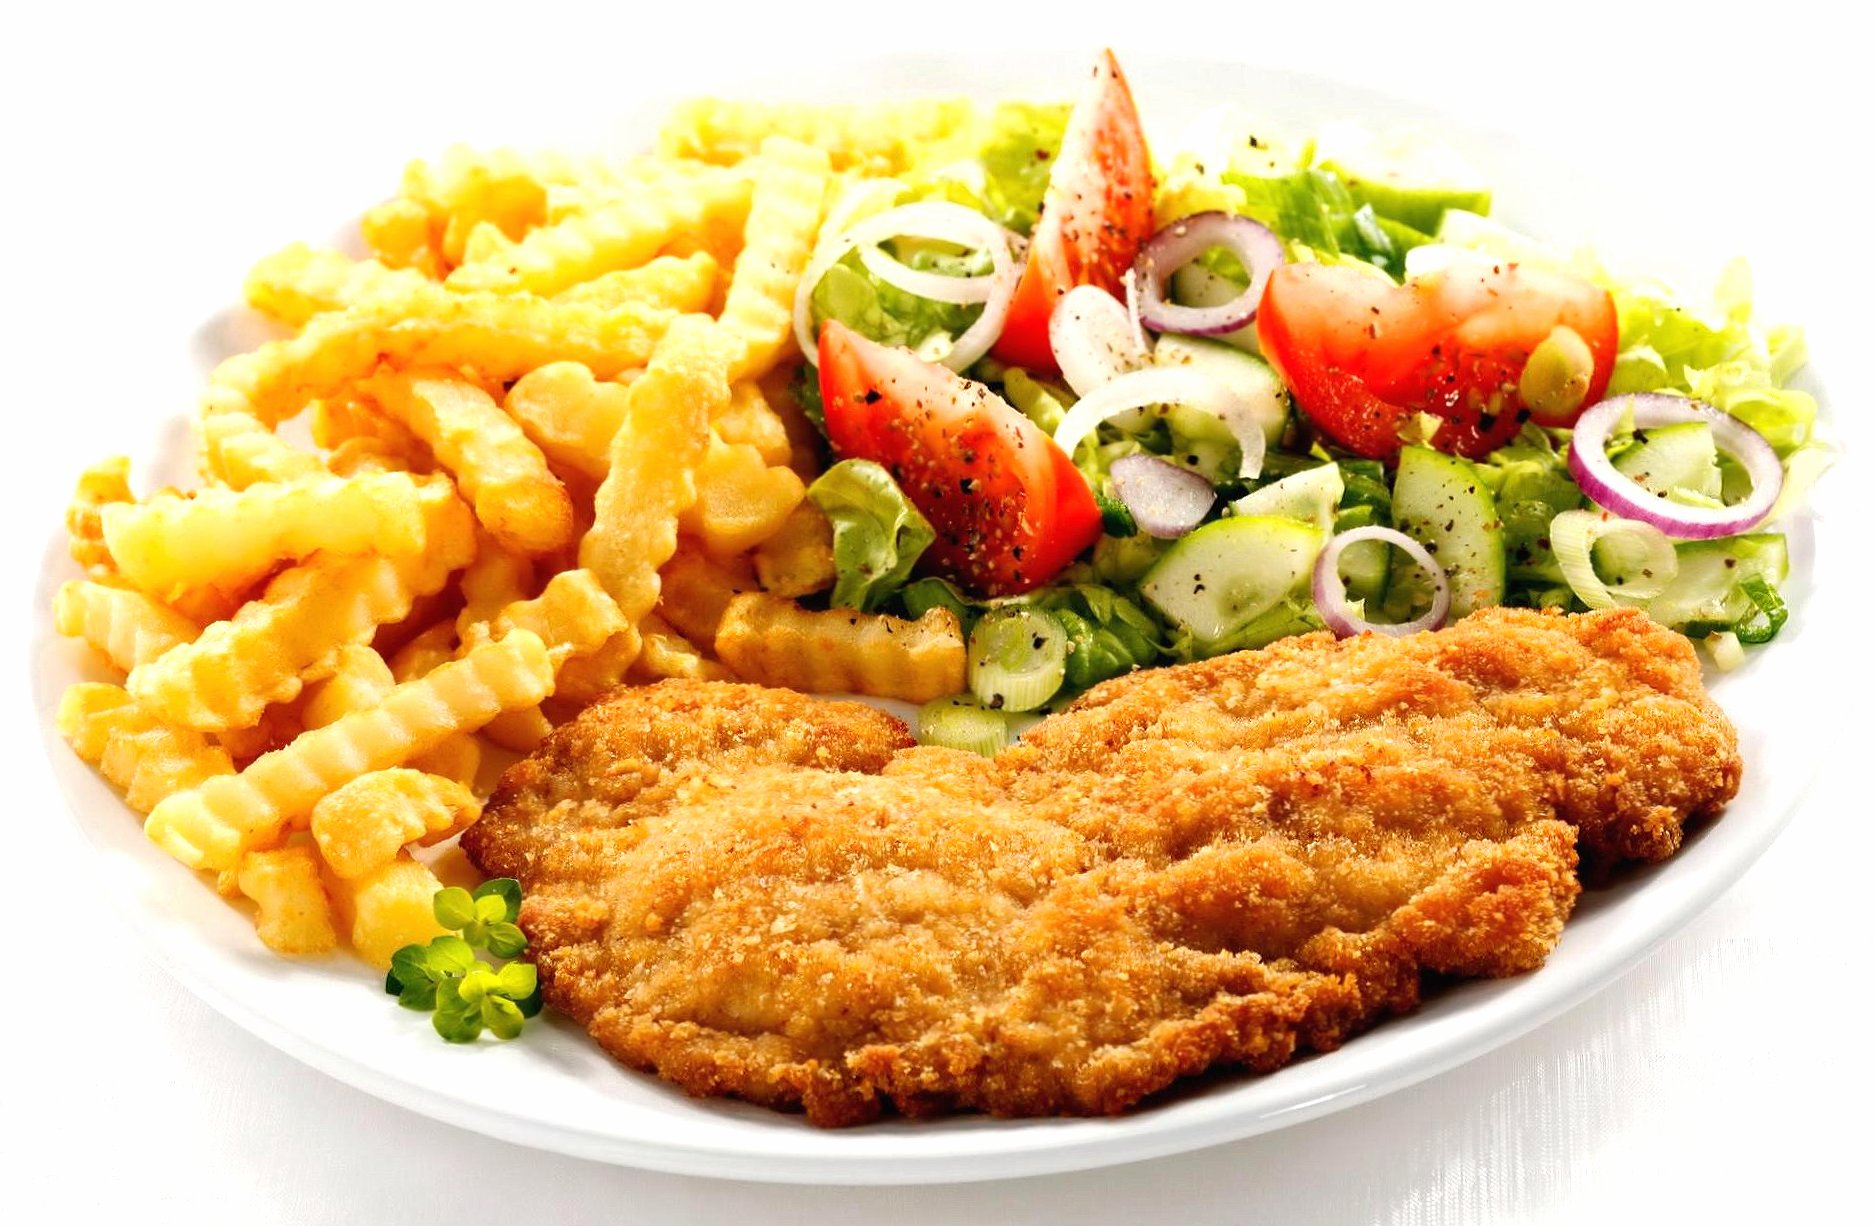 Breaded steak vegetables and chips wallpapers HD quality